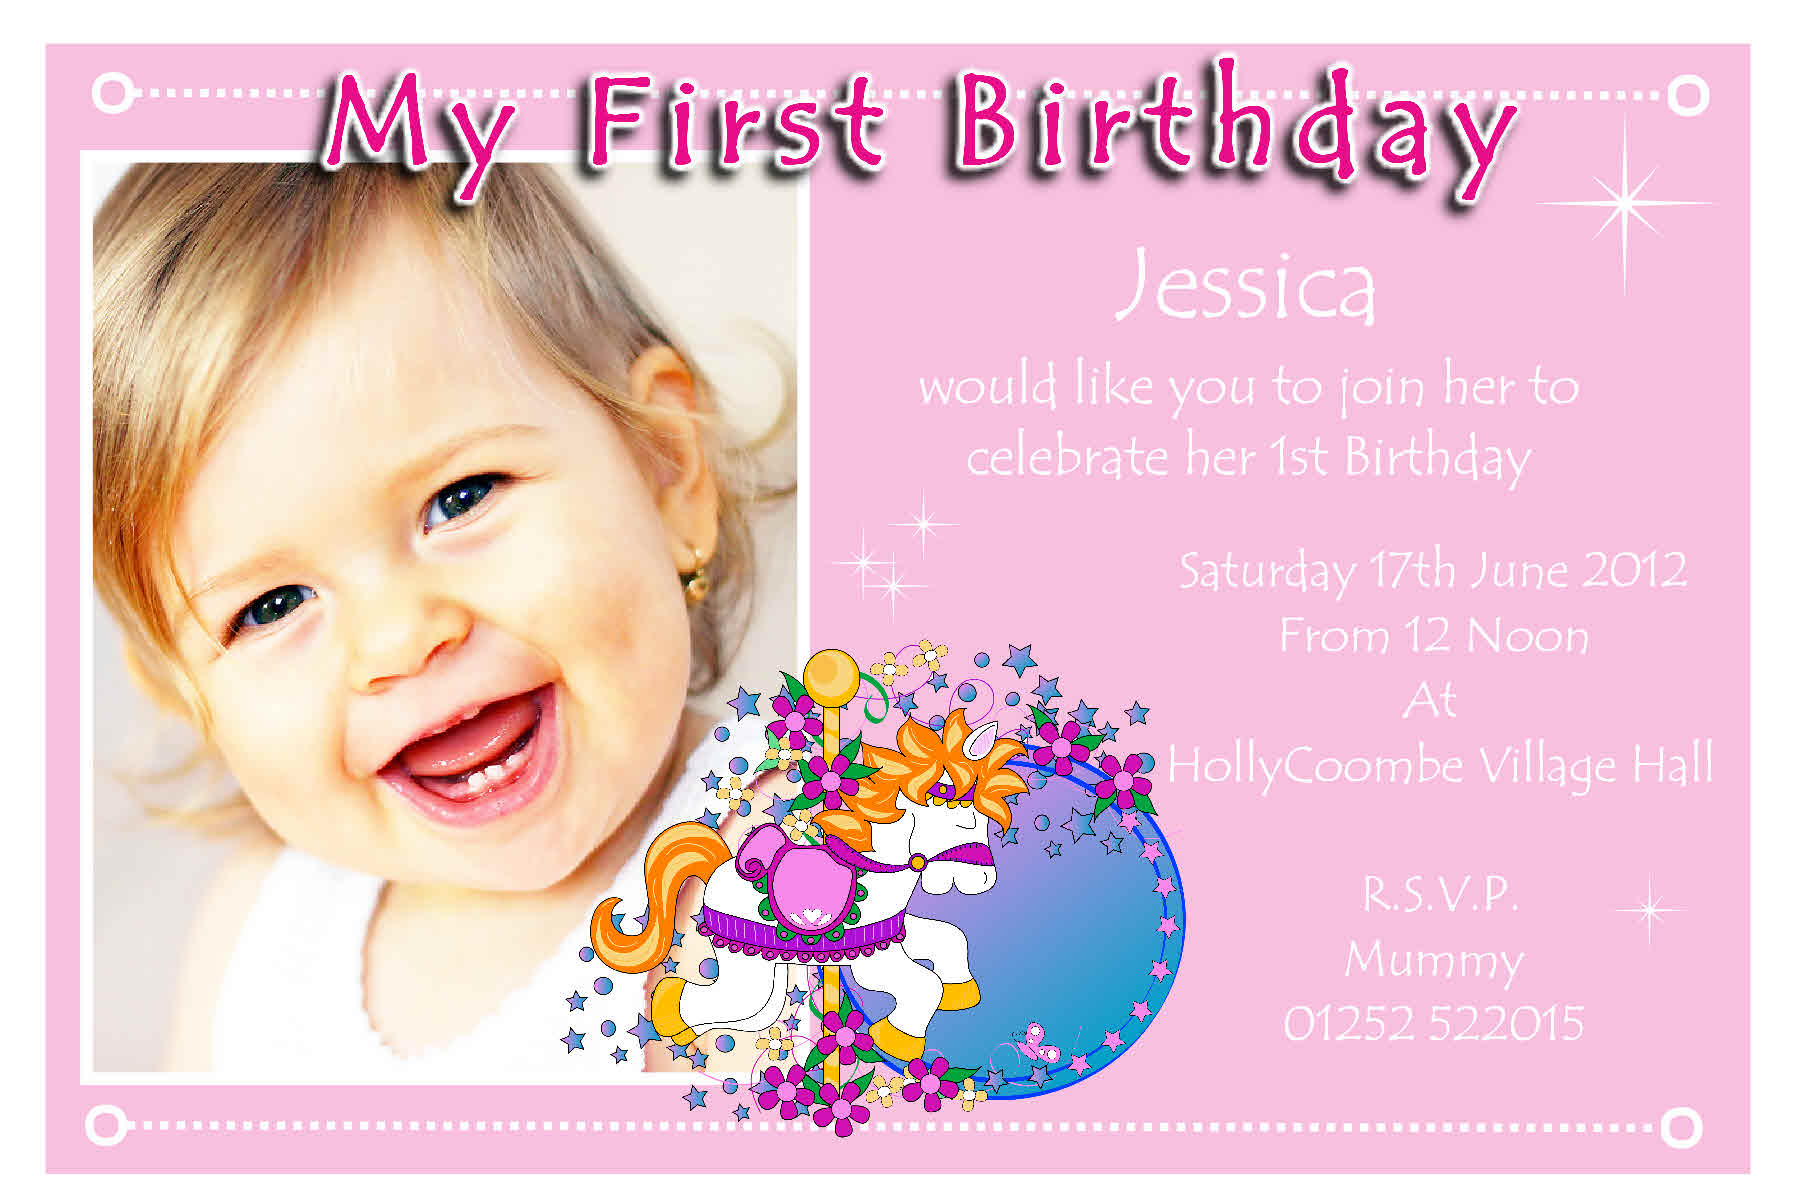 baby birthday card design ; 1St-Year-Baby-Birthday-Invitation-Cards-and-get-inspired-to-create-your-own-birthday-Card-design-with-this-ideas-1